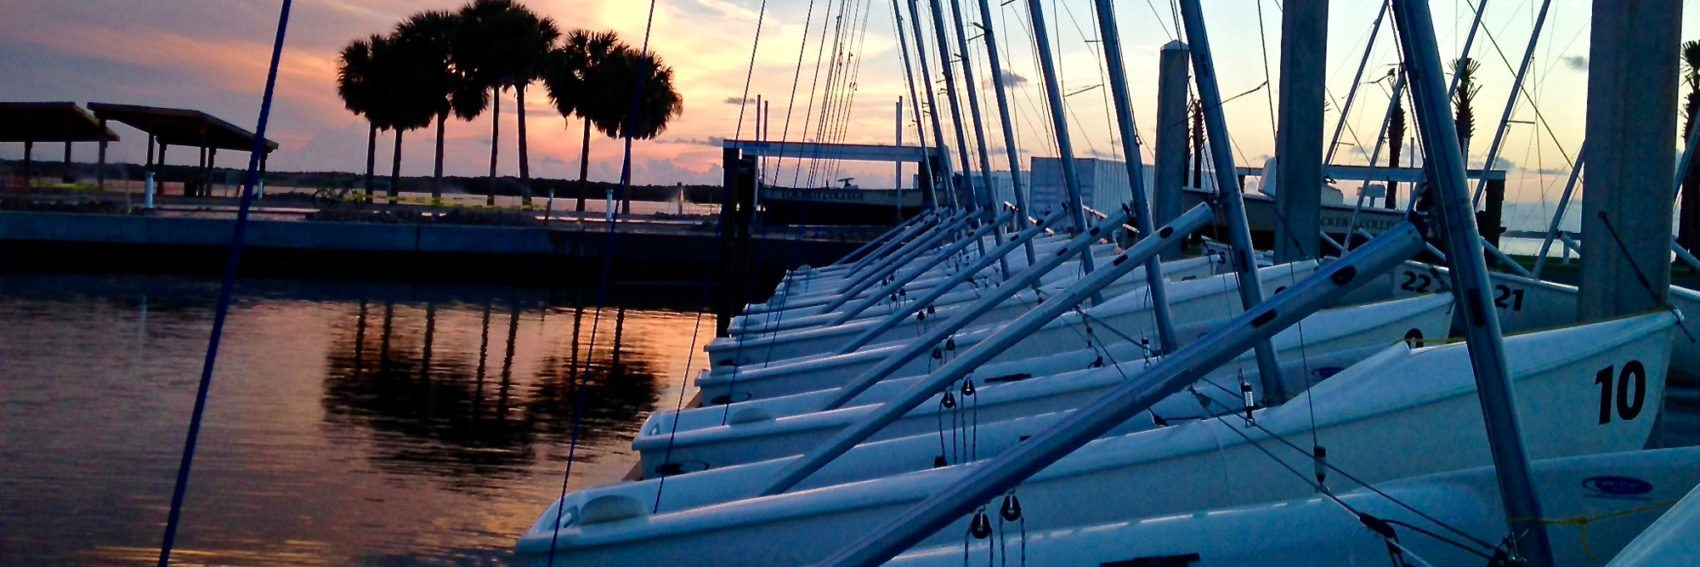 Doyle Sailing Center at sunset